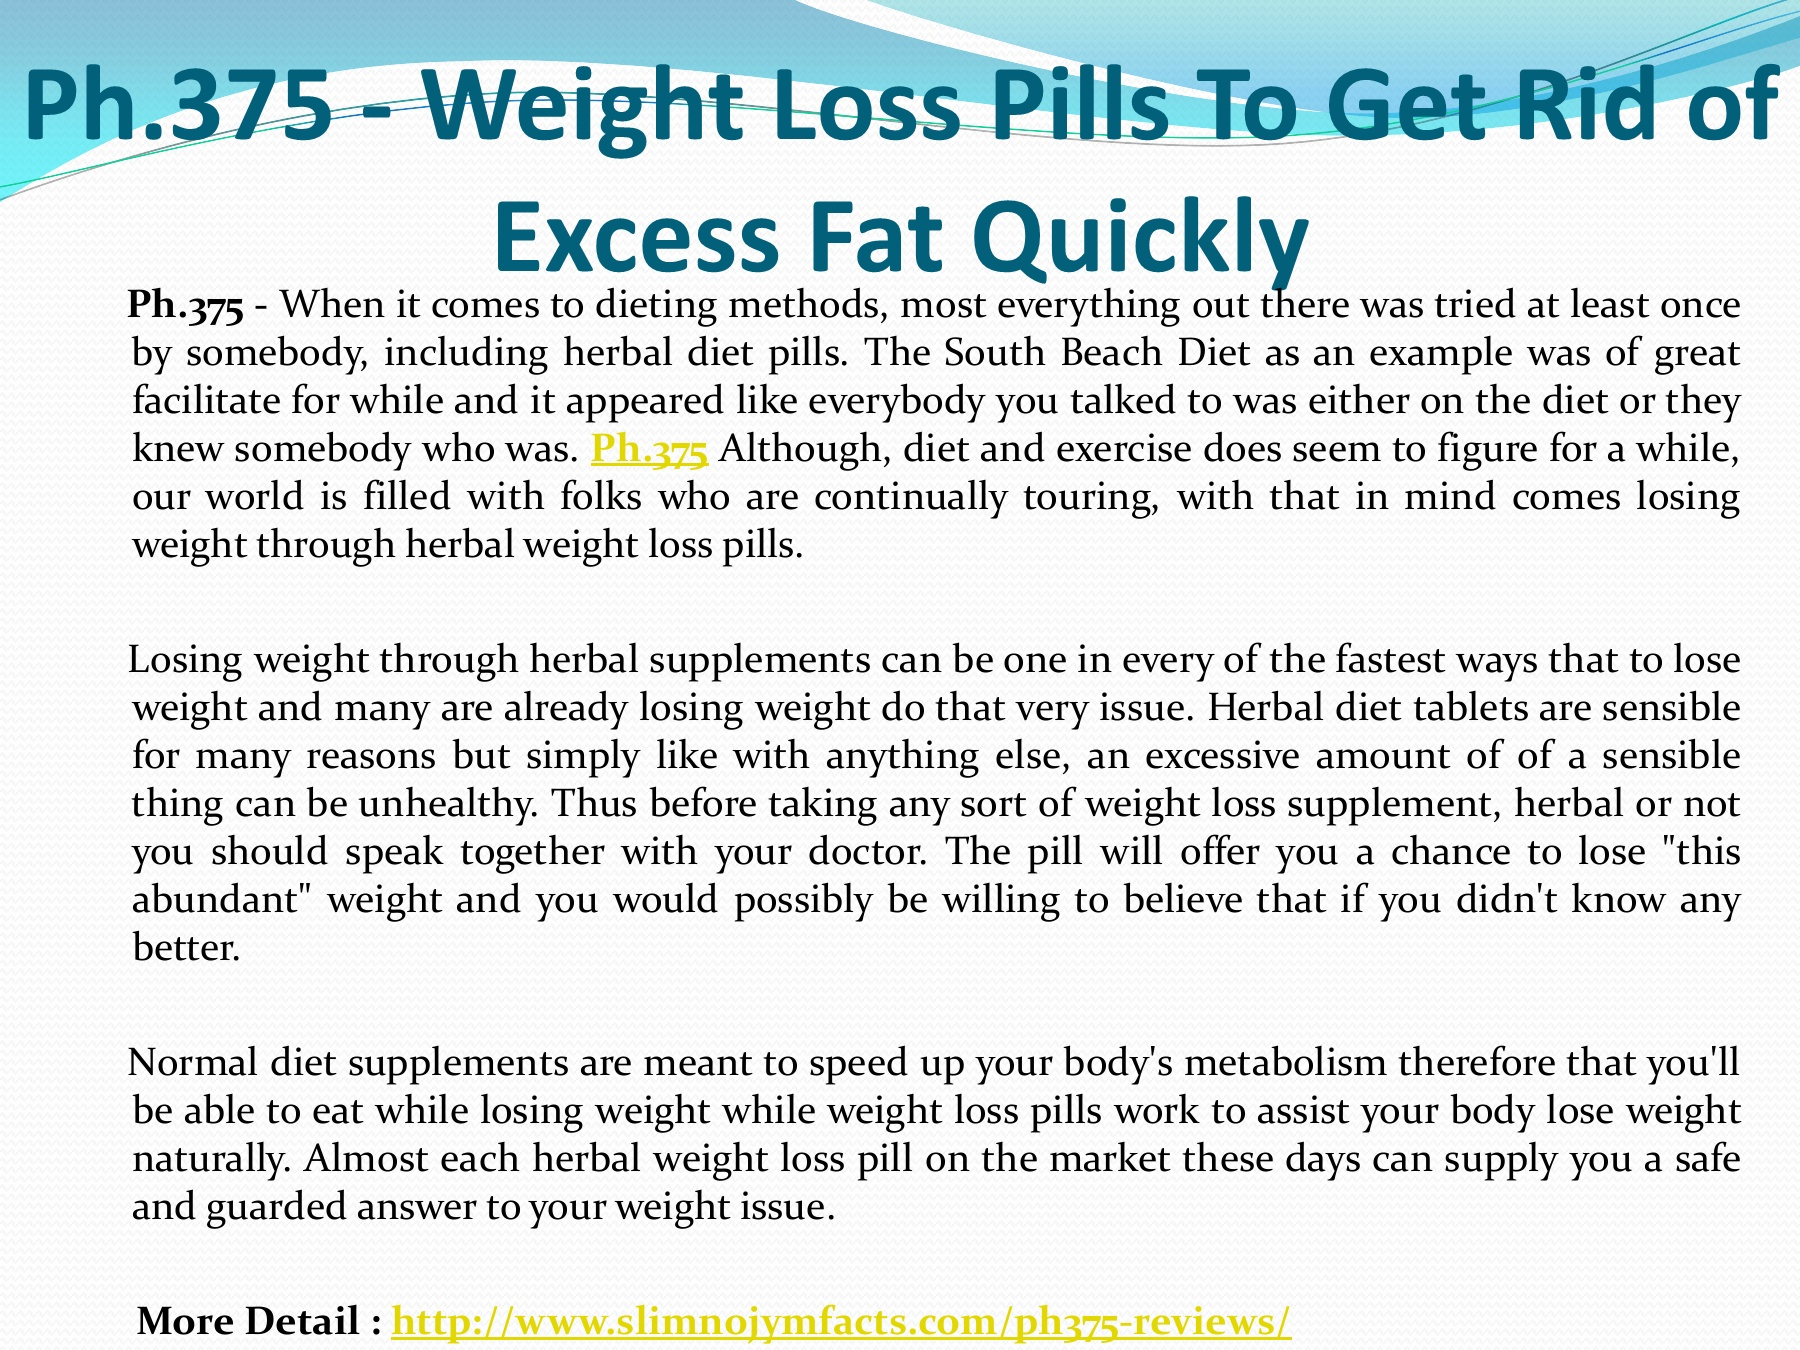 What herbs get rid of excess weight